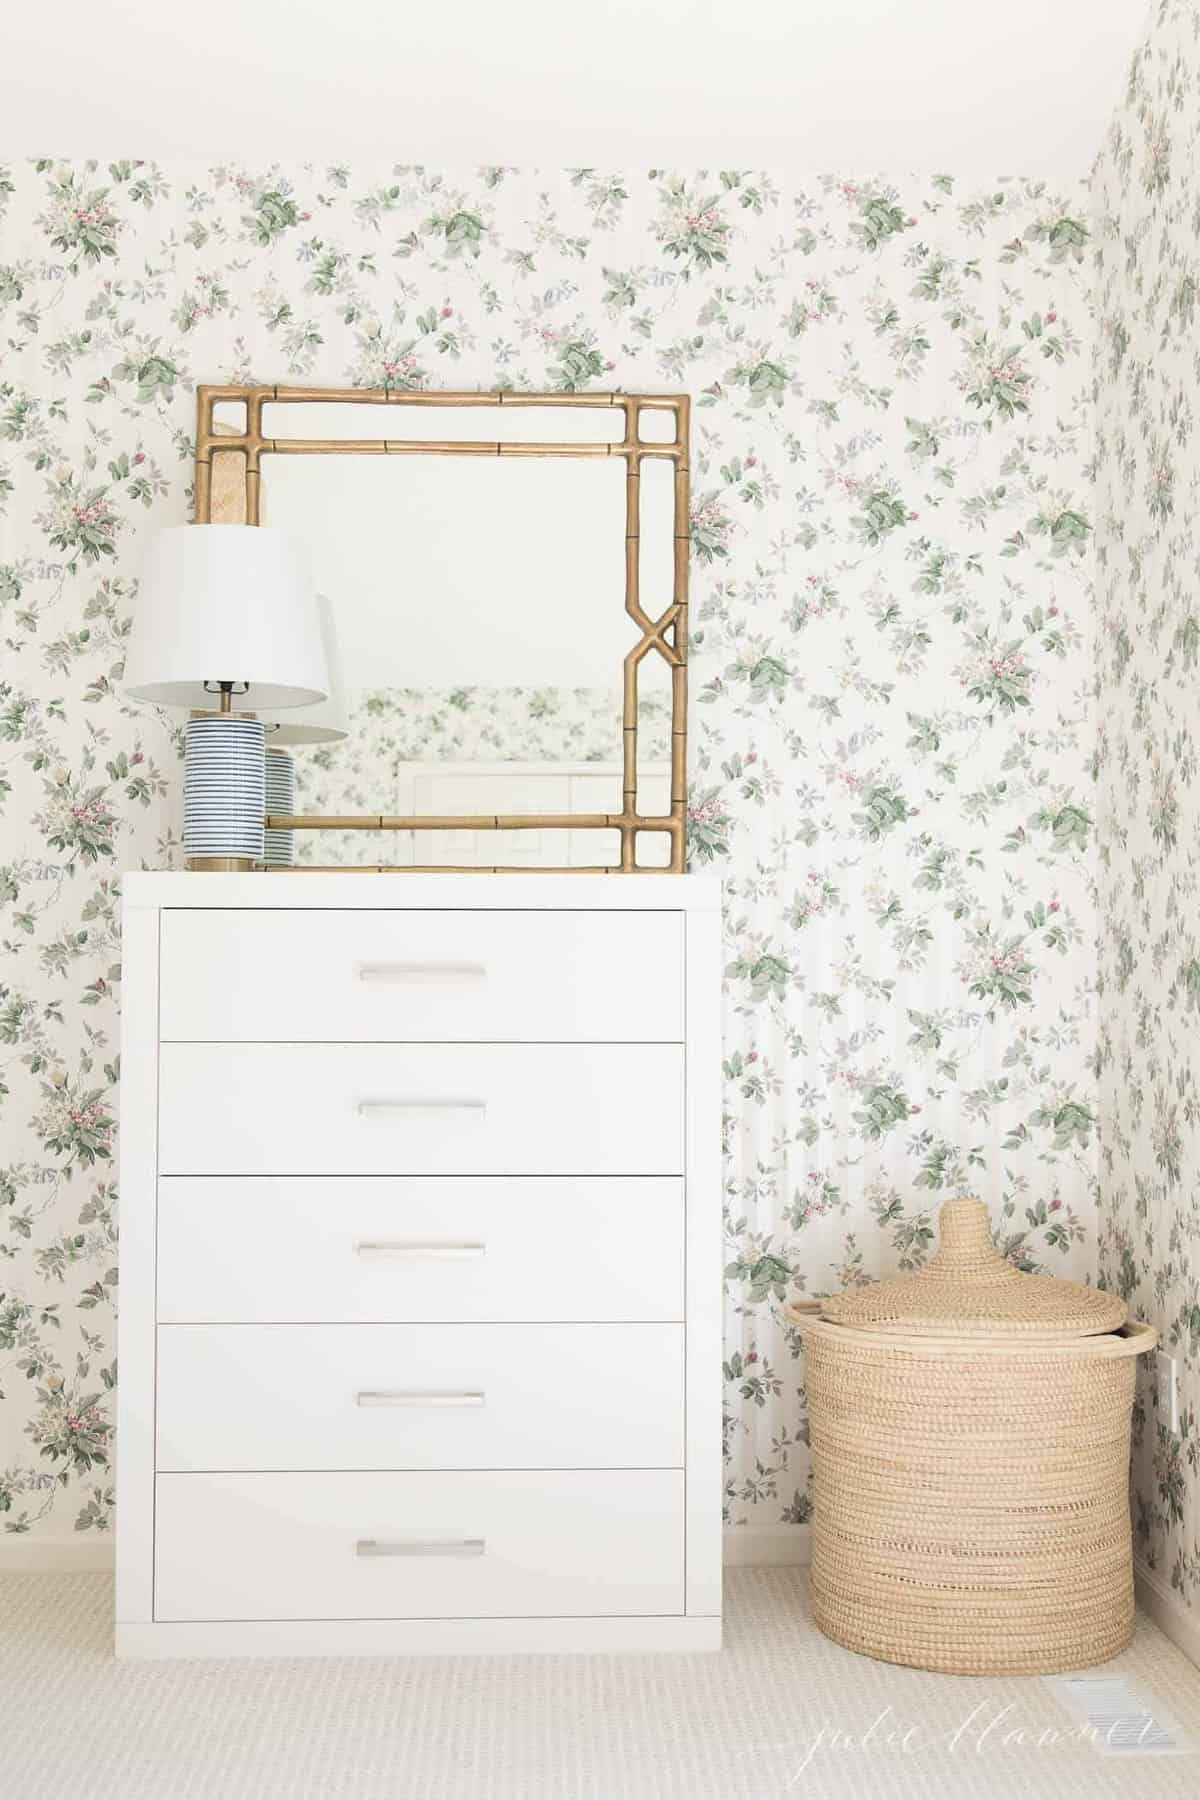 stripe lamp asymmetrical on chest of drawers with mirror behind